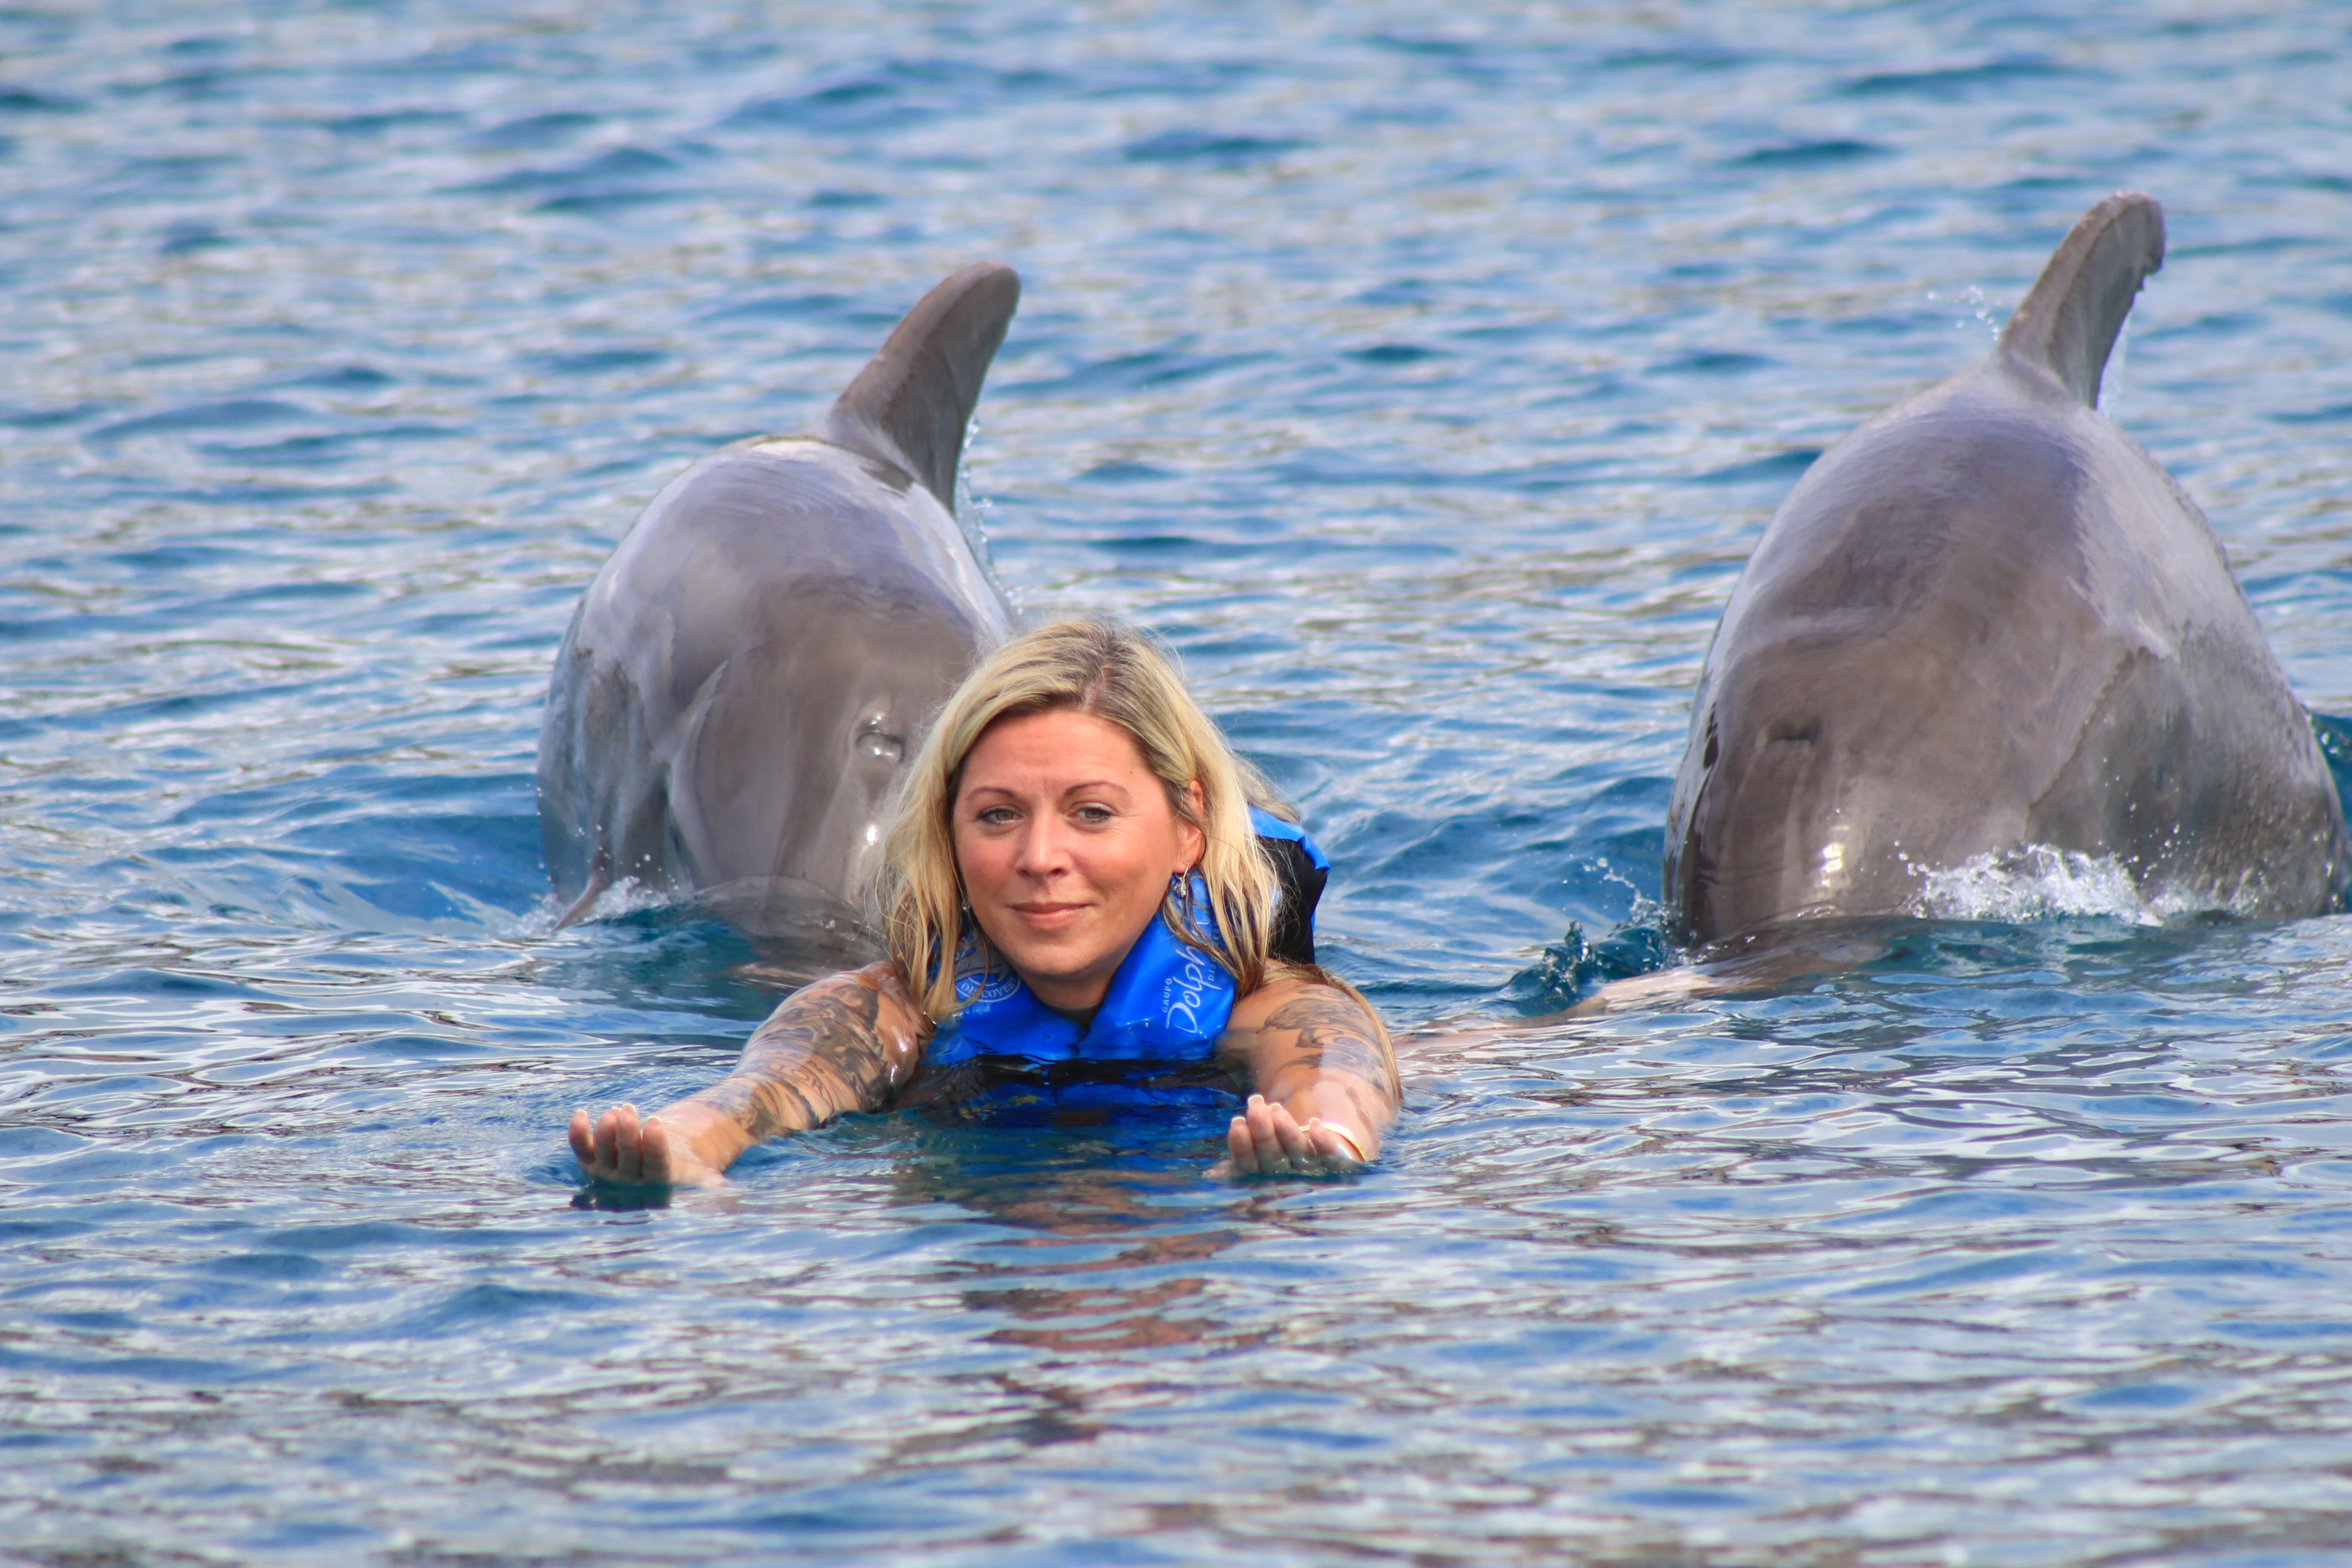 Swimming with dolphins... check!